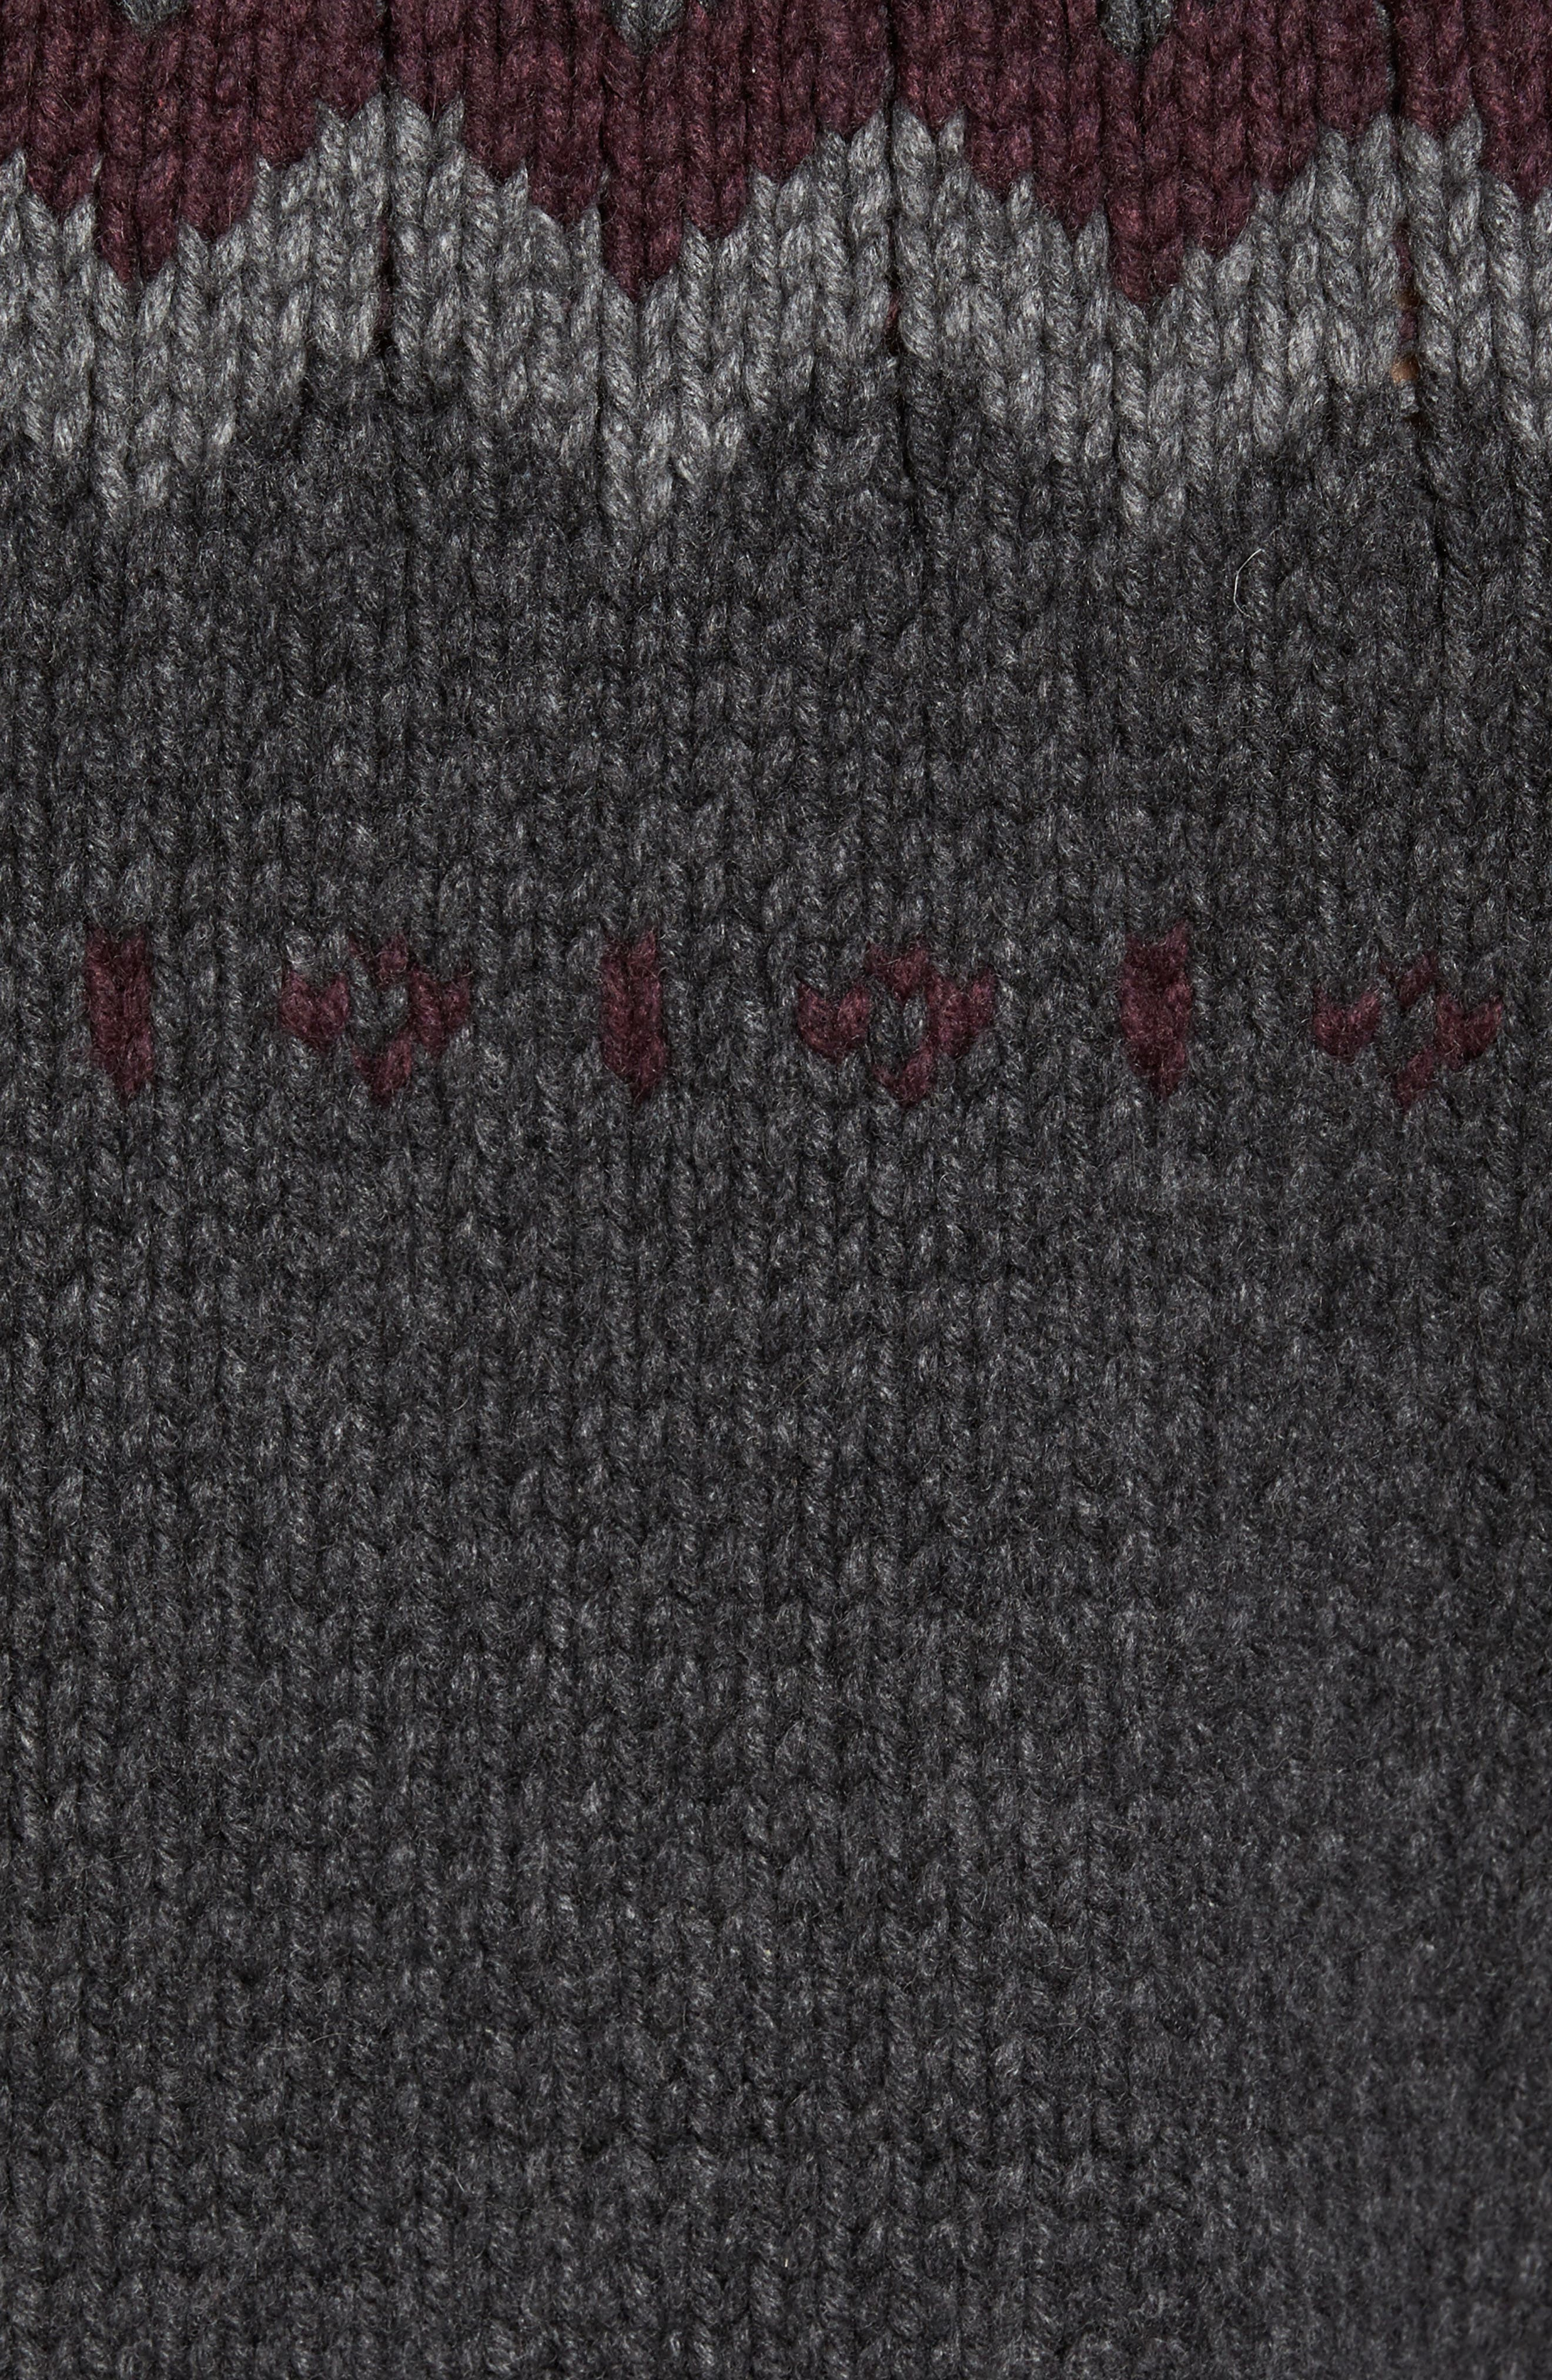 Intarsia Cashmere Sweater,                             Alternate thumbnail 5, color,                             Grey / Burgundy/ Light Grey